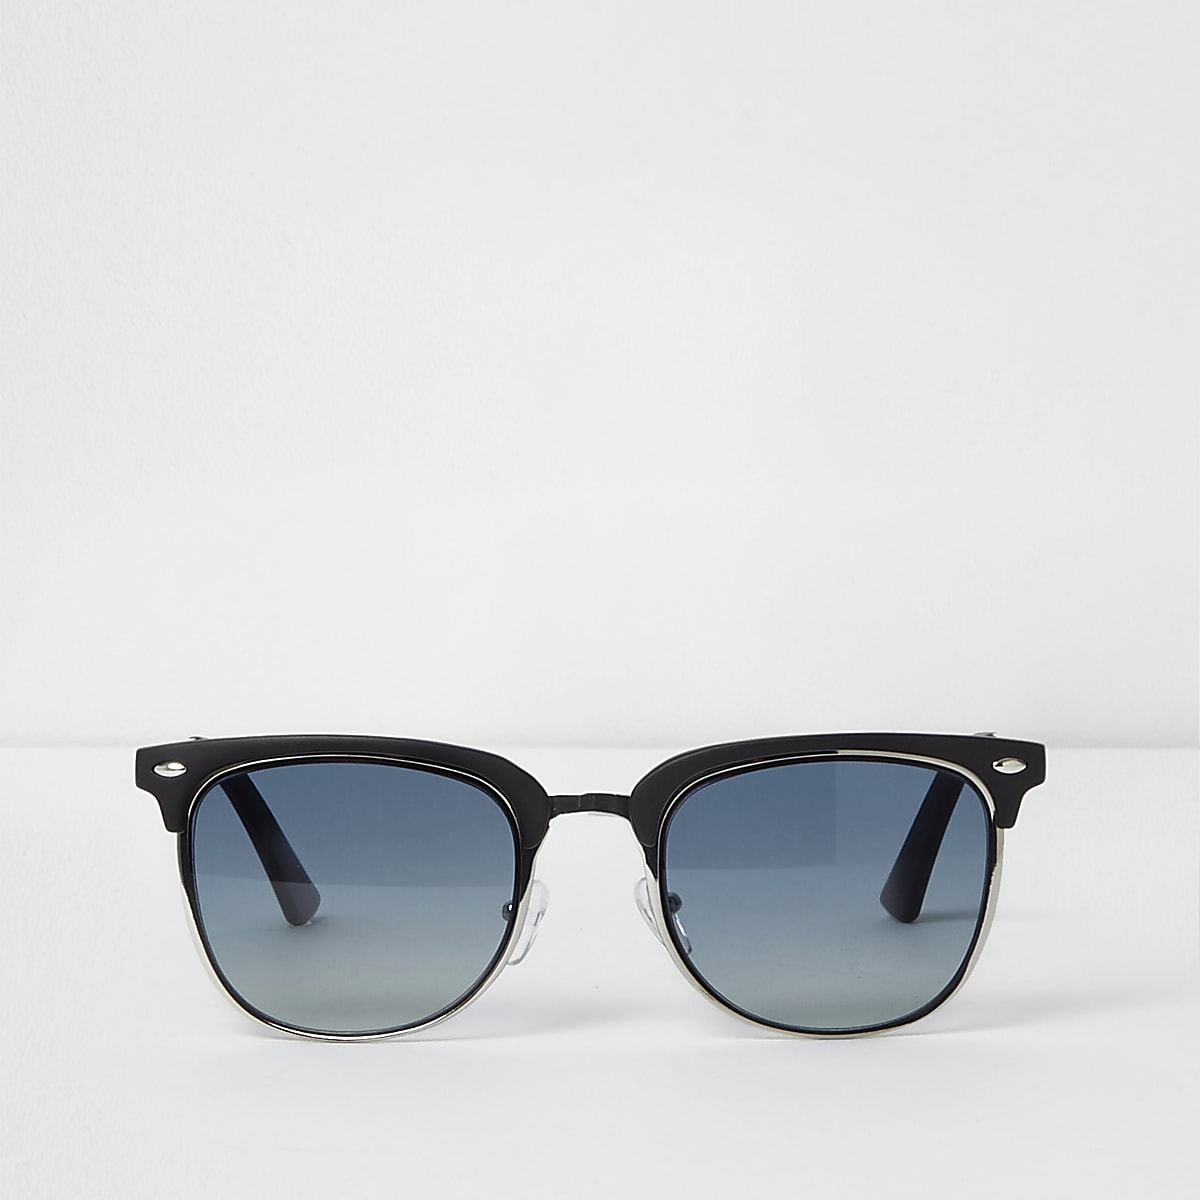 Black blue lens retro frame sunglasses